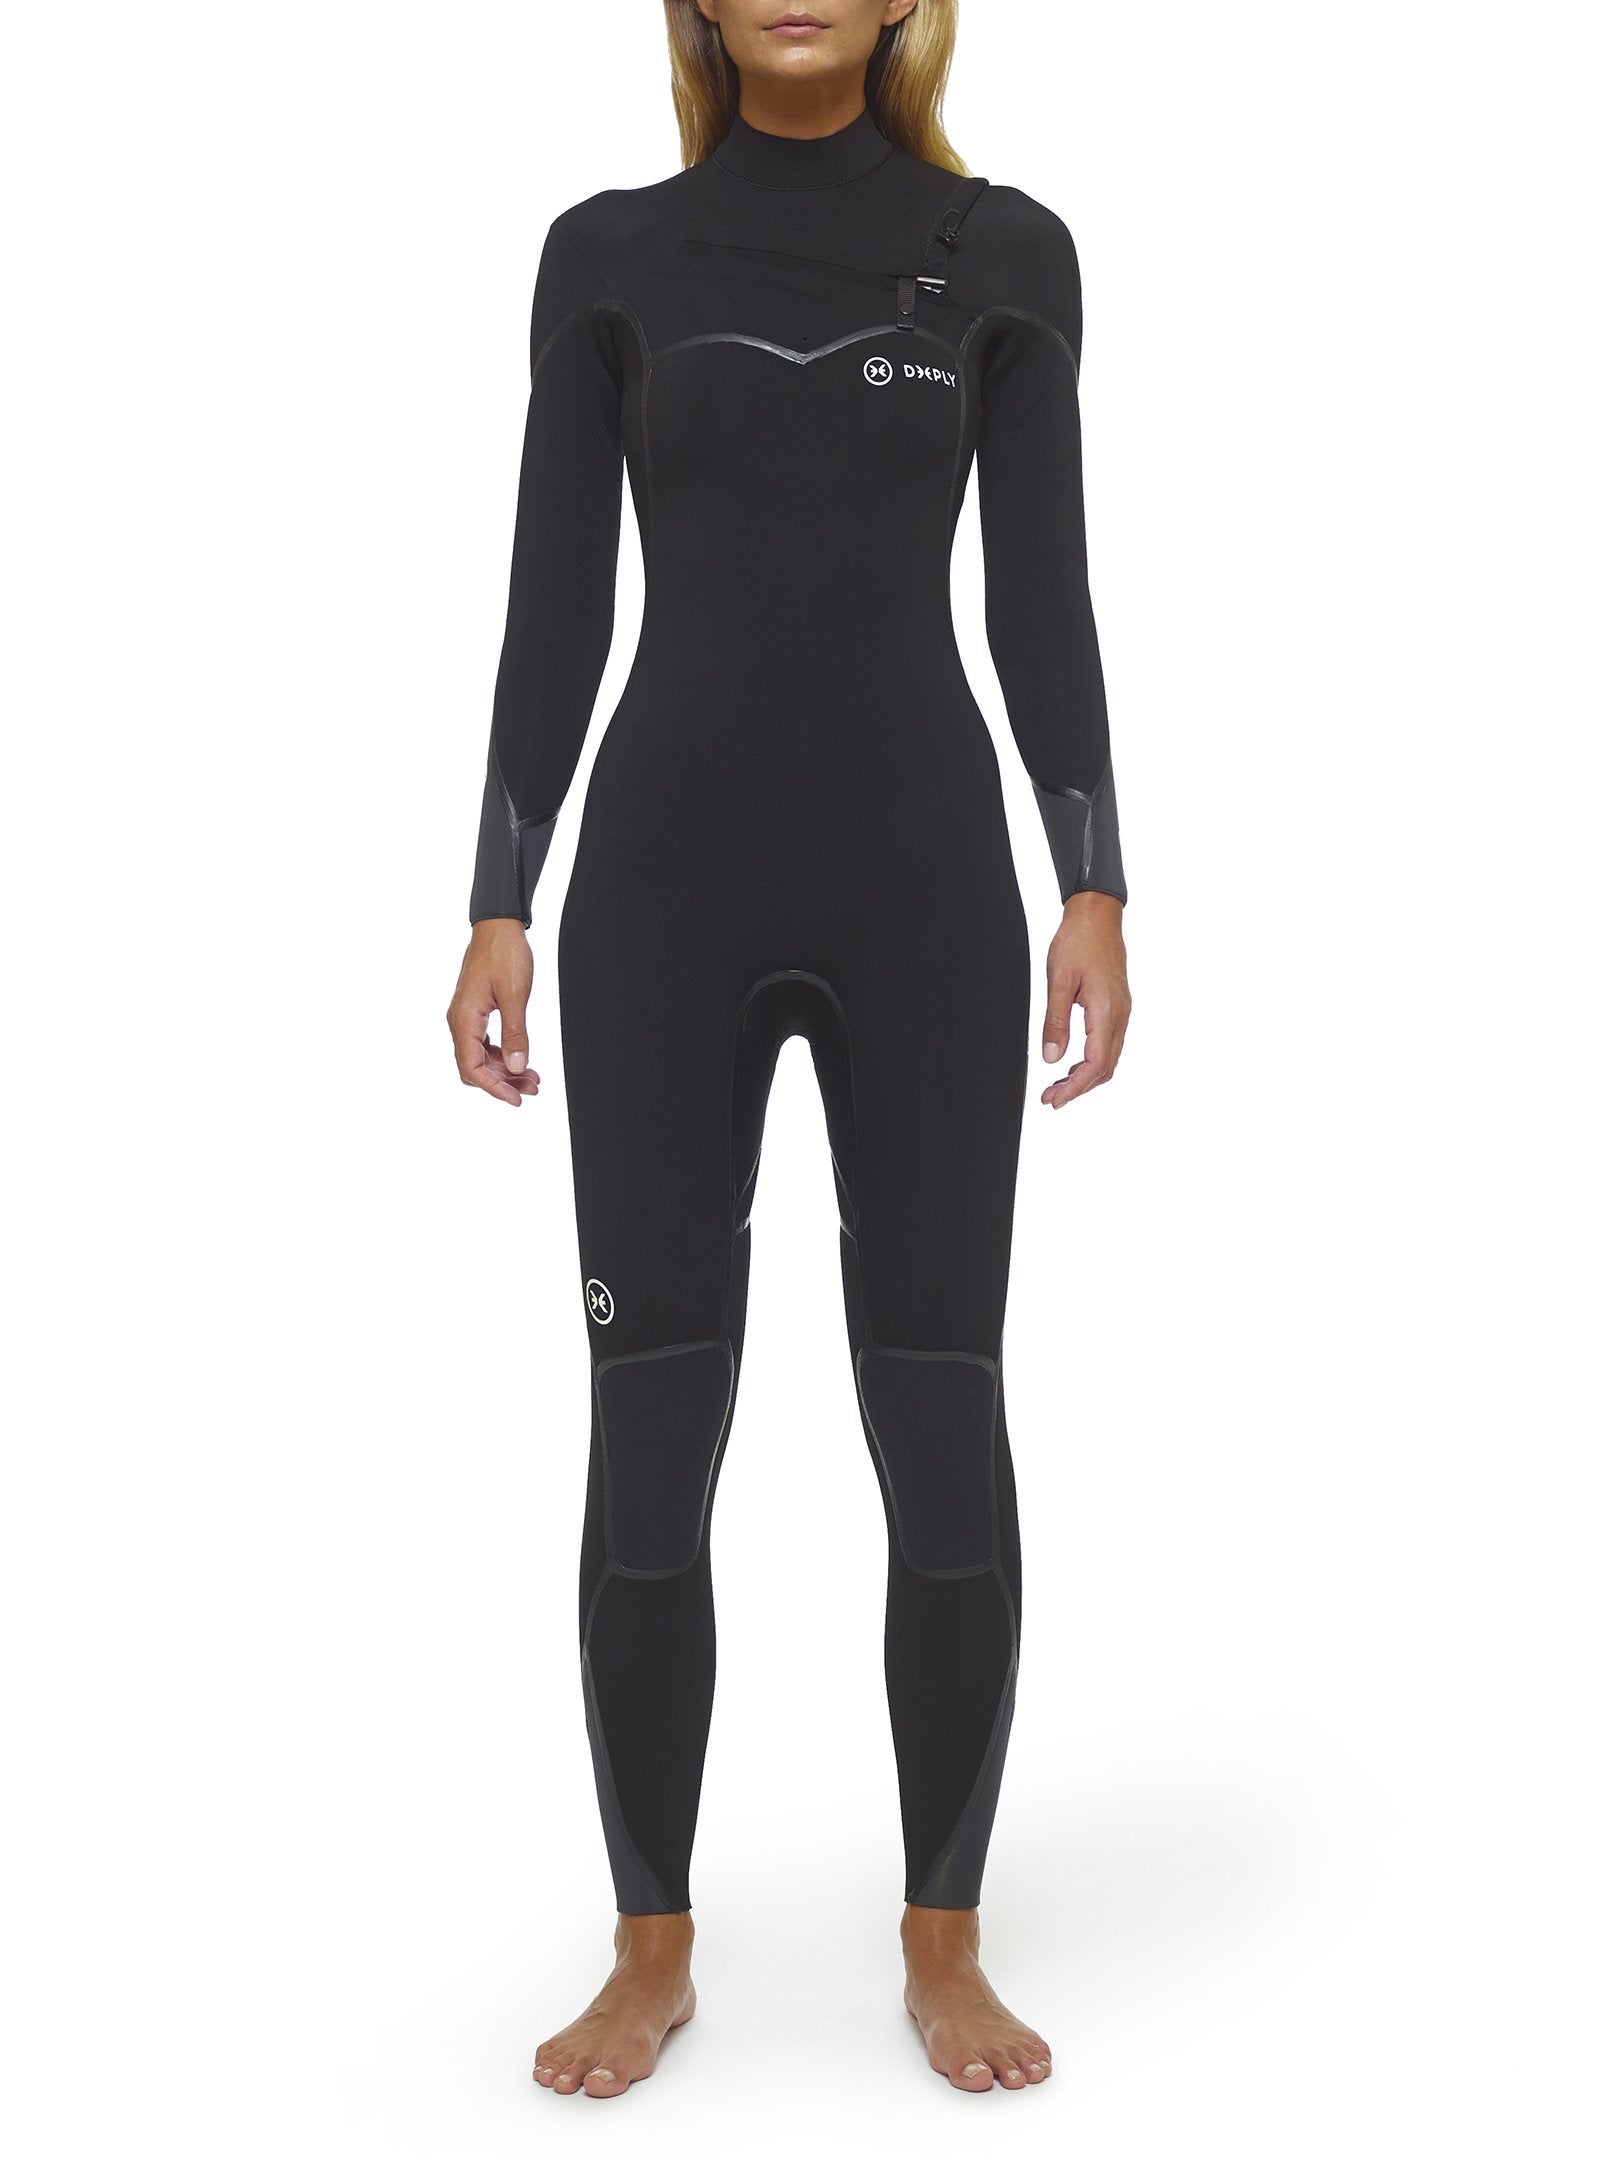 Deeply Wetsuit Performance 4/3 Chest Zip Fastdry Graphene